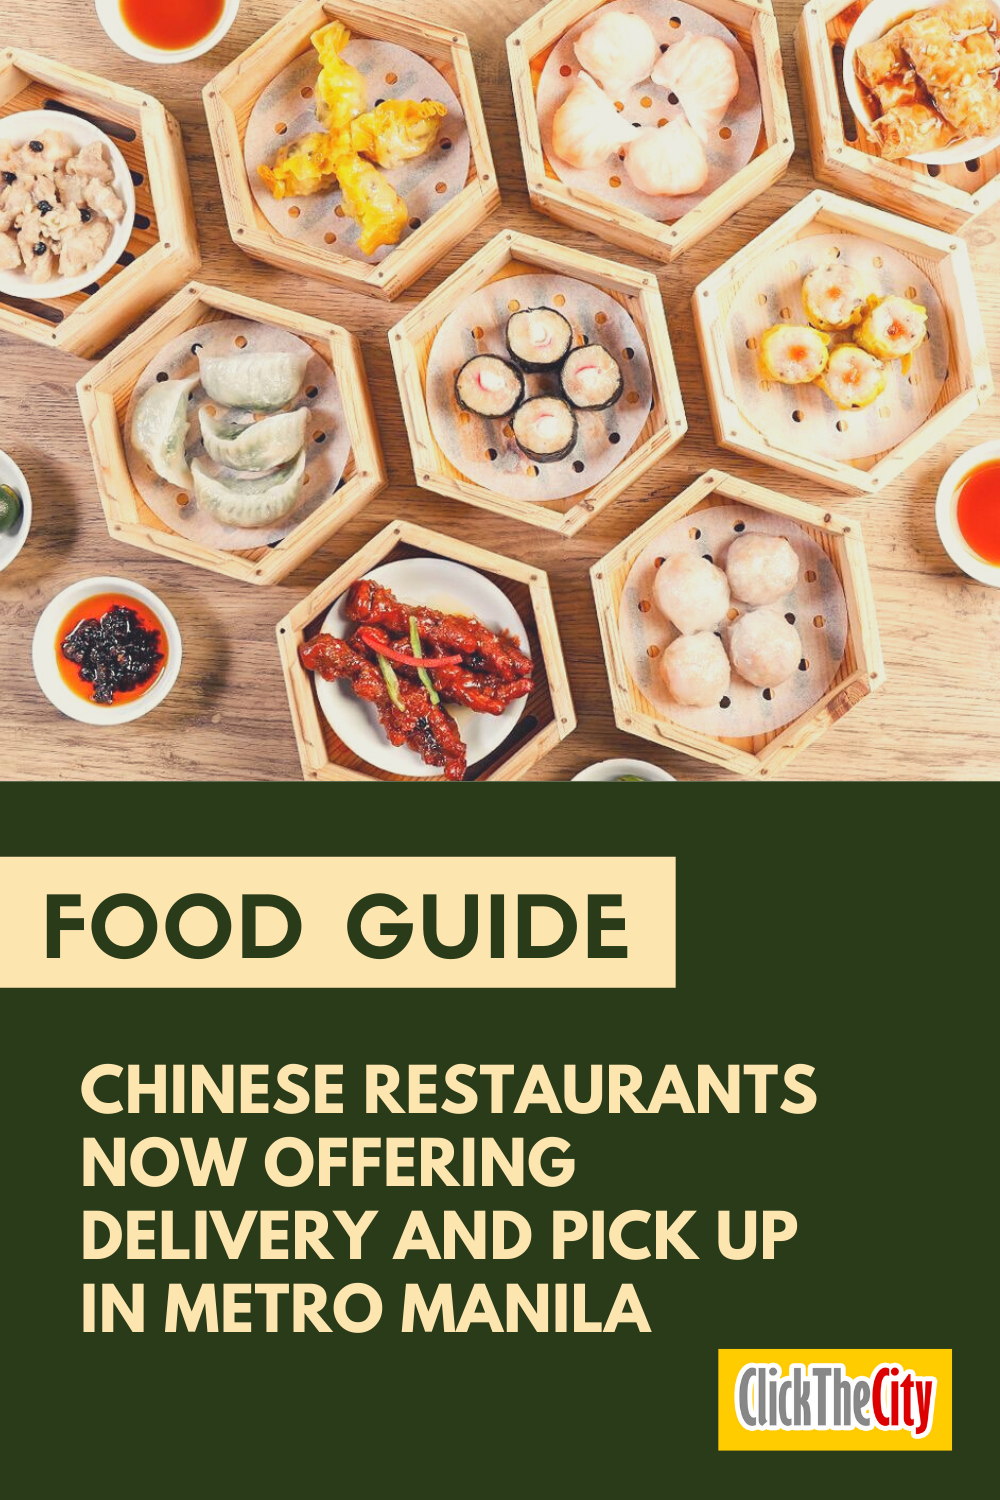 Chinese Restaurants Now Offering Delivery And Pick Up In Metro Manila In 2020 Chinese Restaurant Restaurant Delivery Food Guide